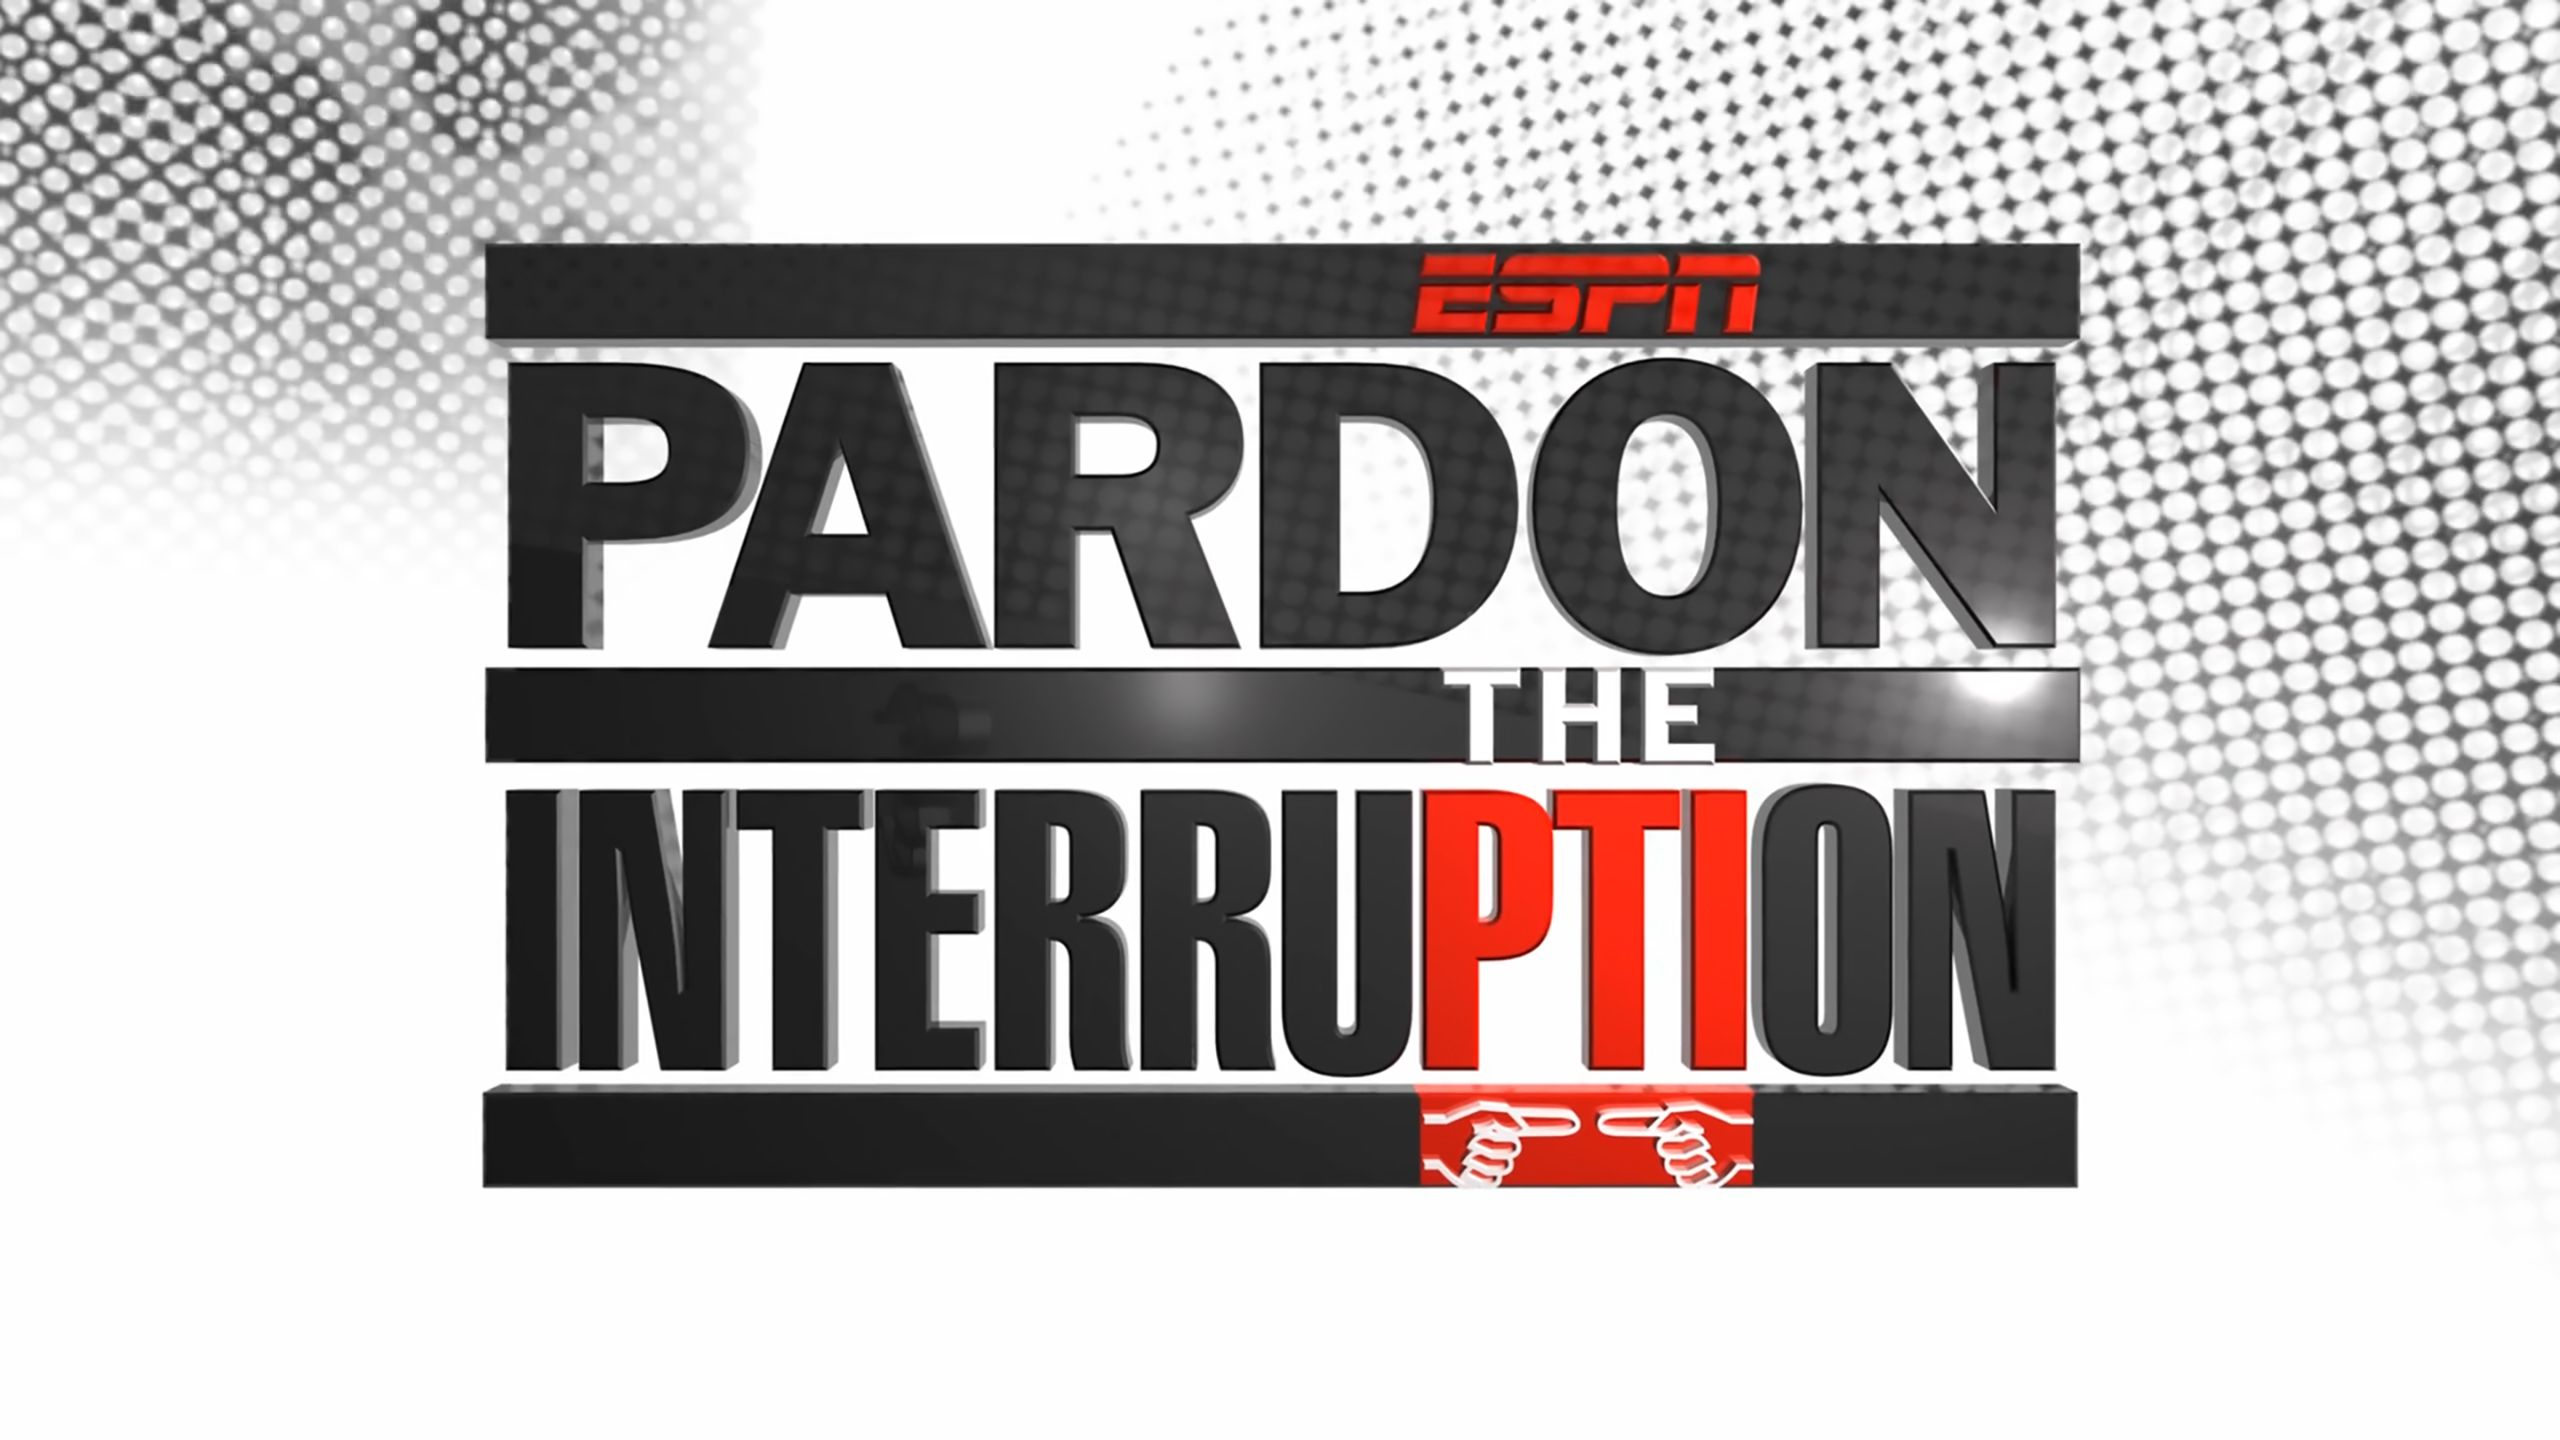 Mon, 12/11 - Pardon The Interruption